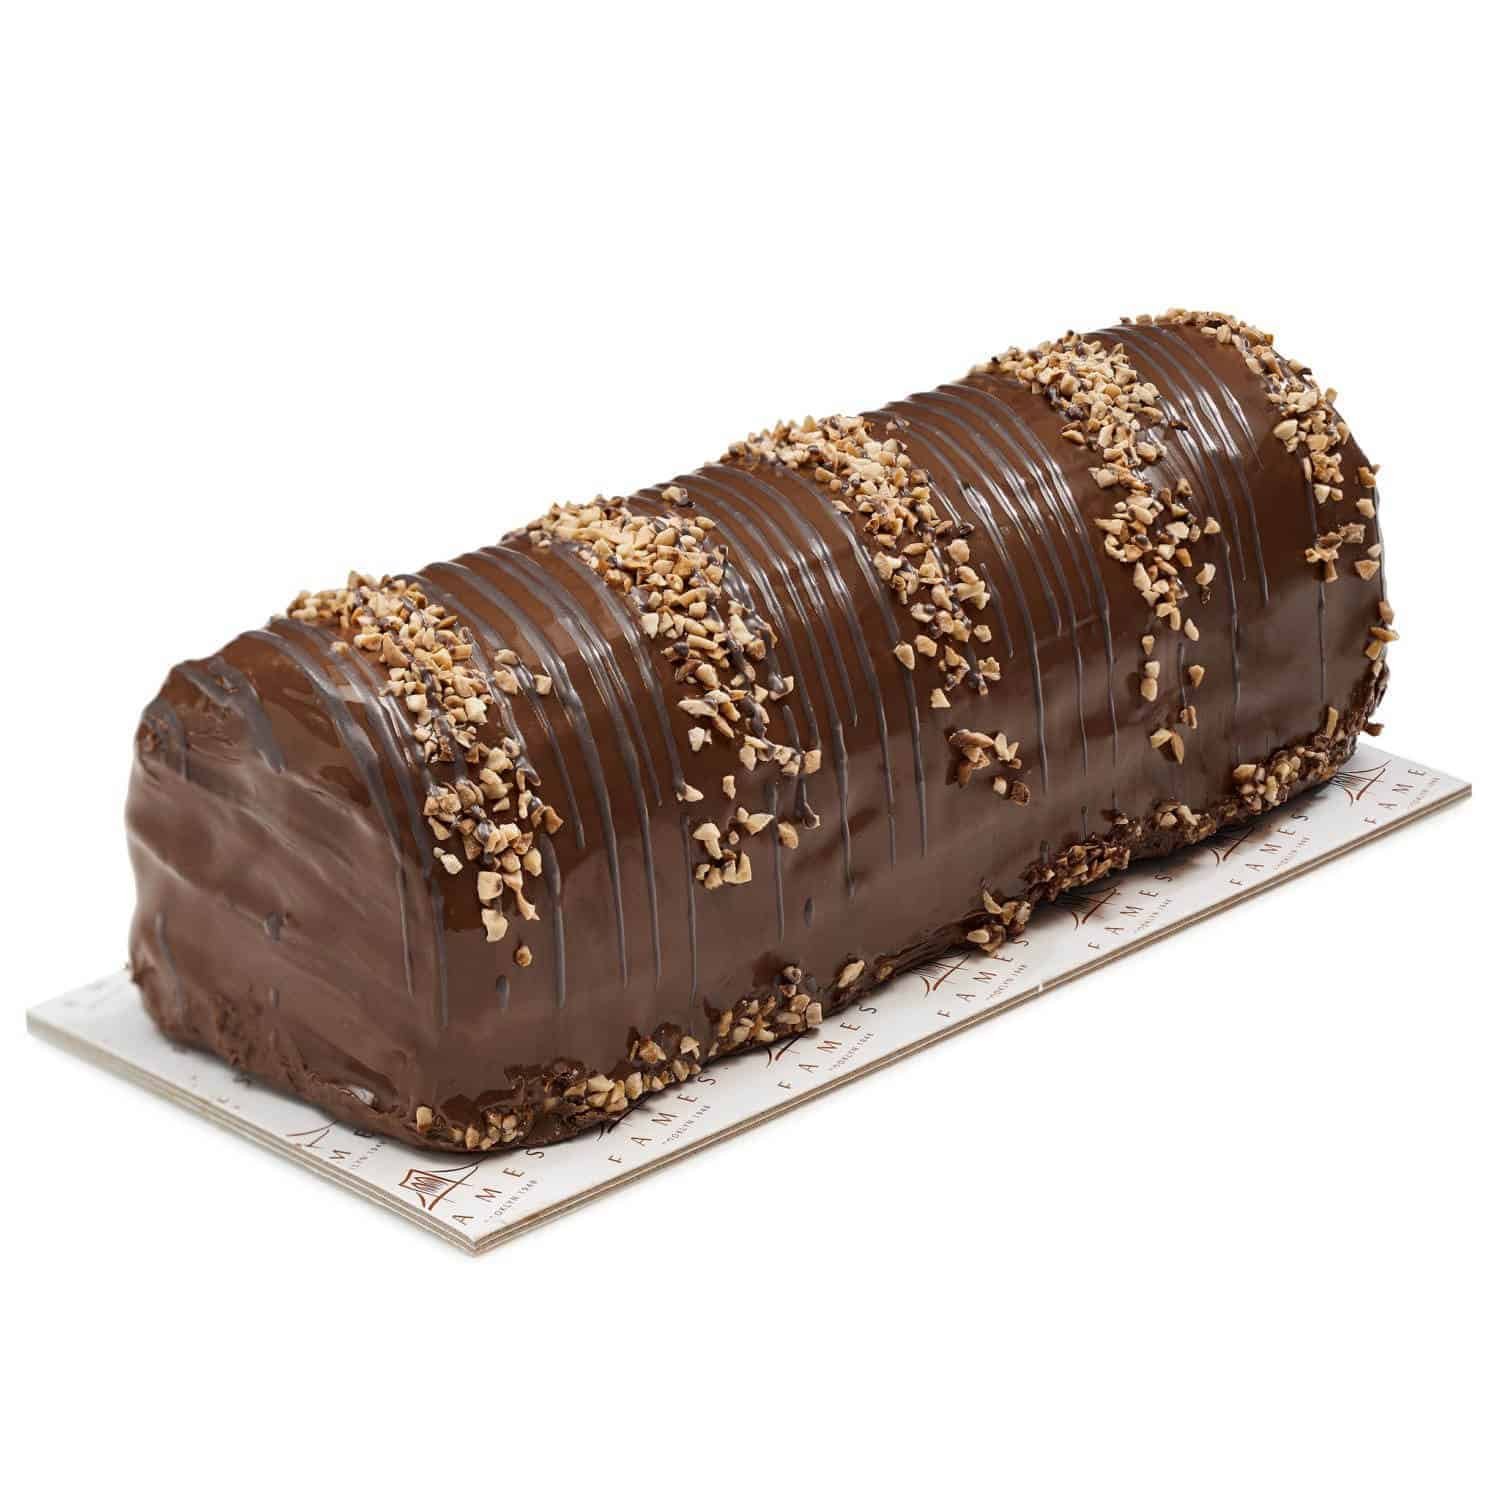 Zebra Chocolate Halva Log